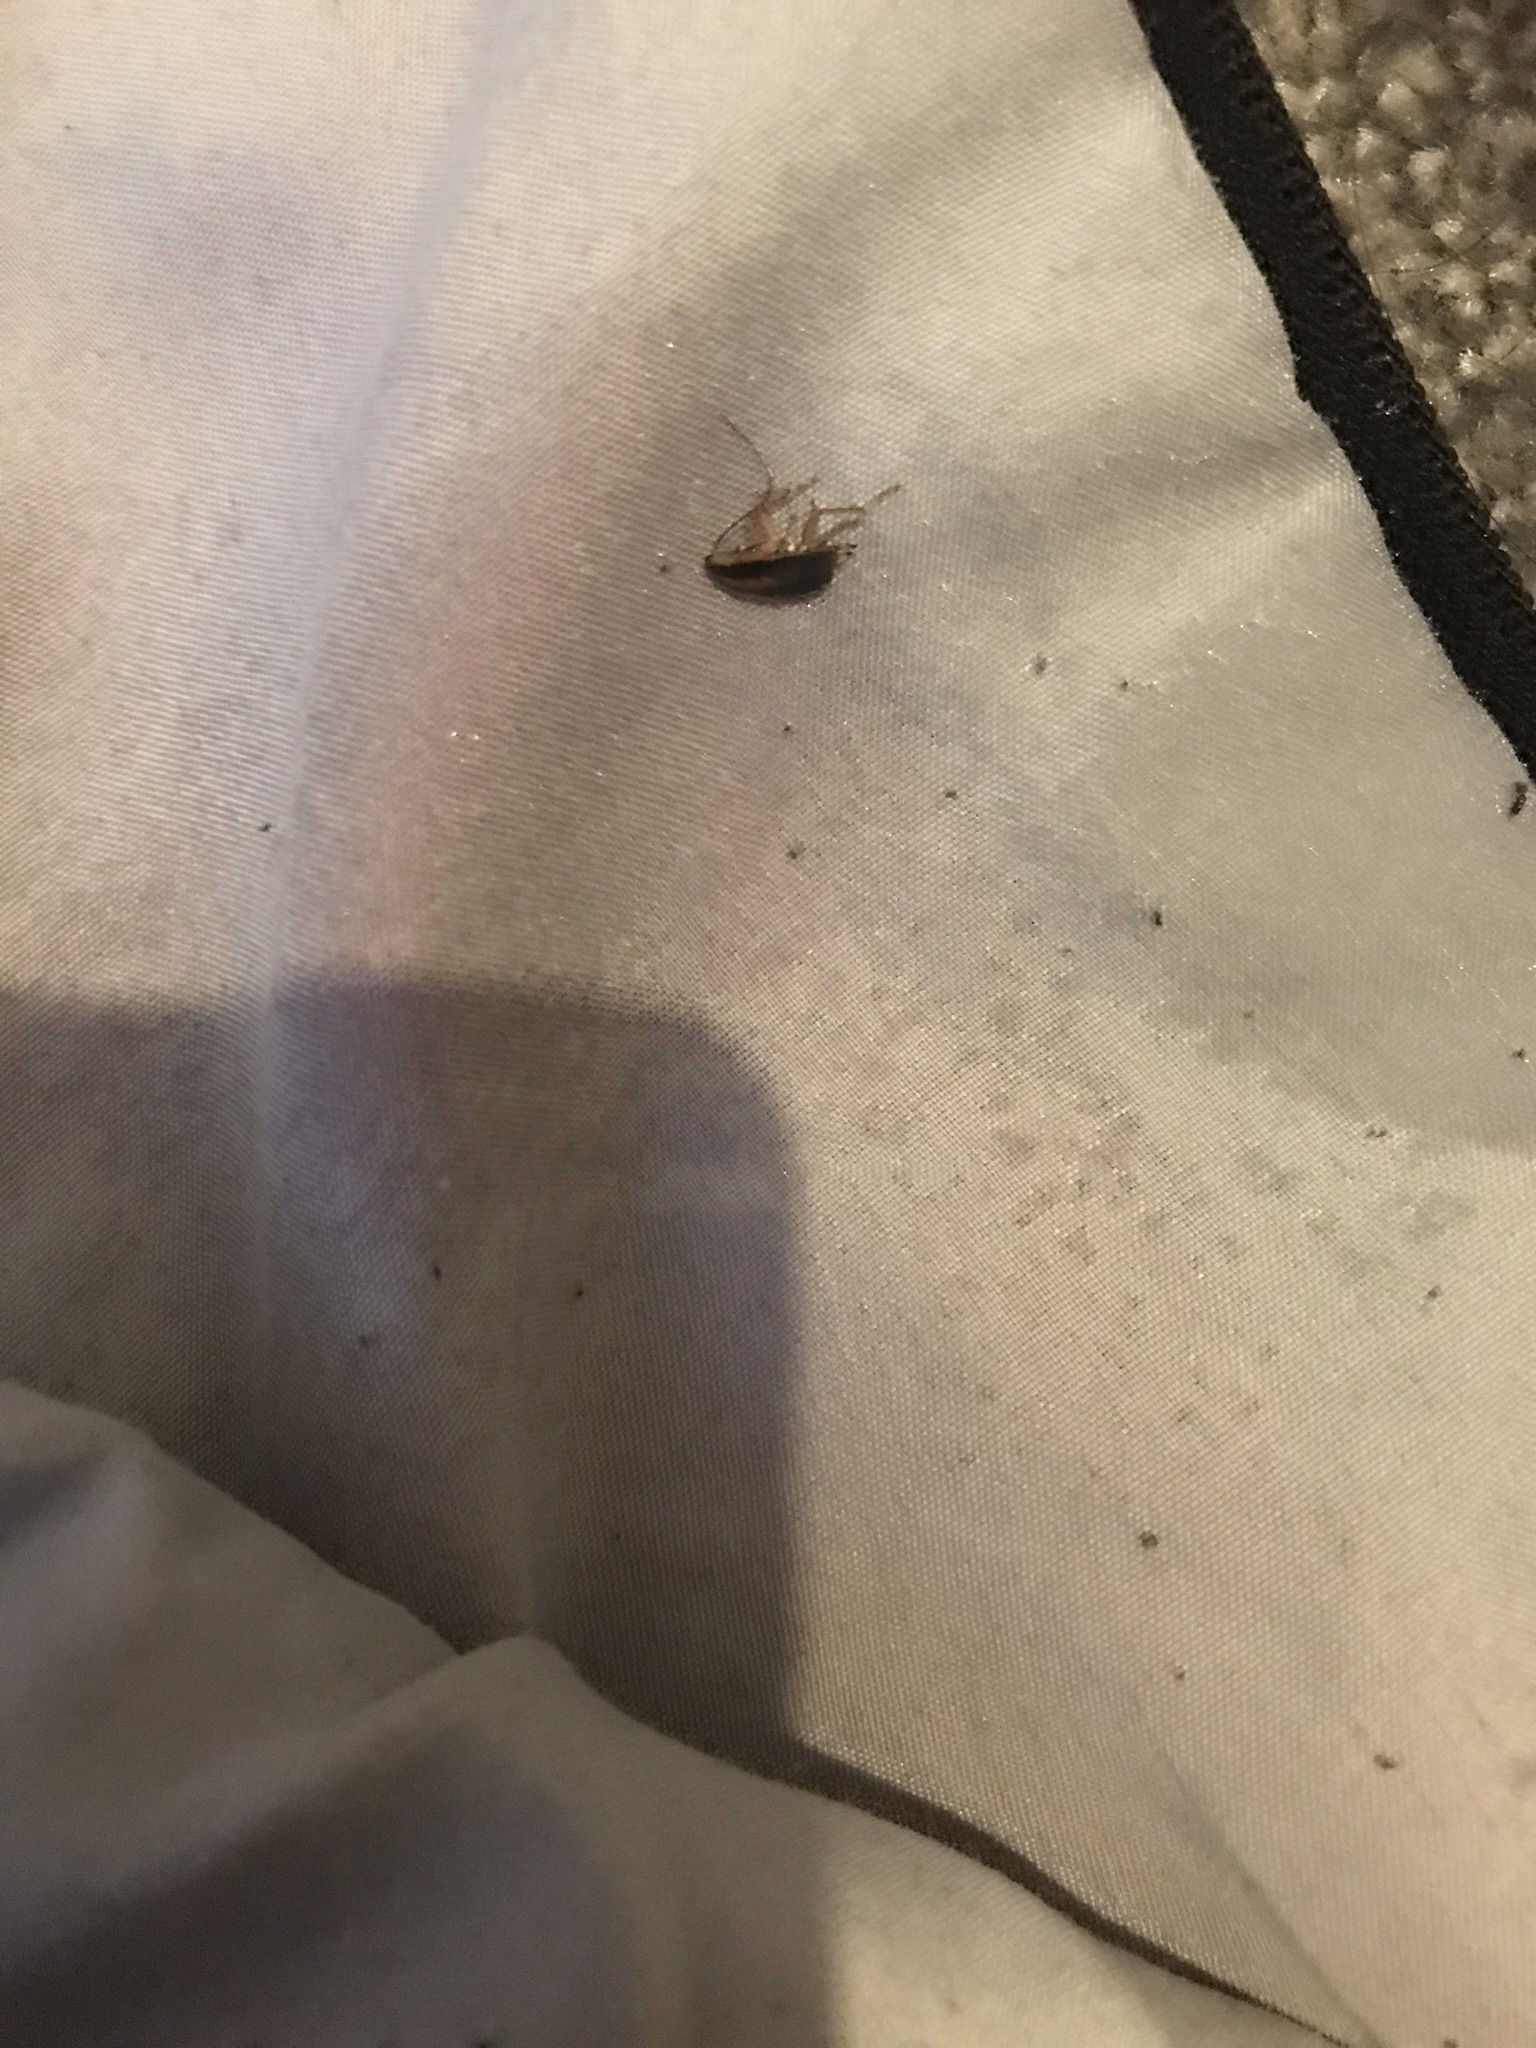 Cockroaches in amenities in a residential block of flats